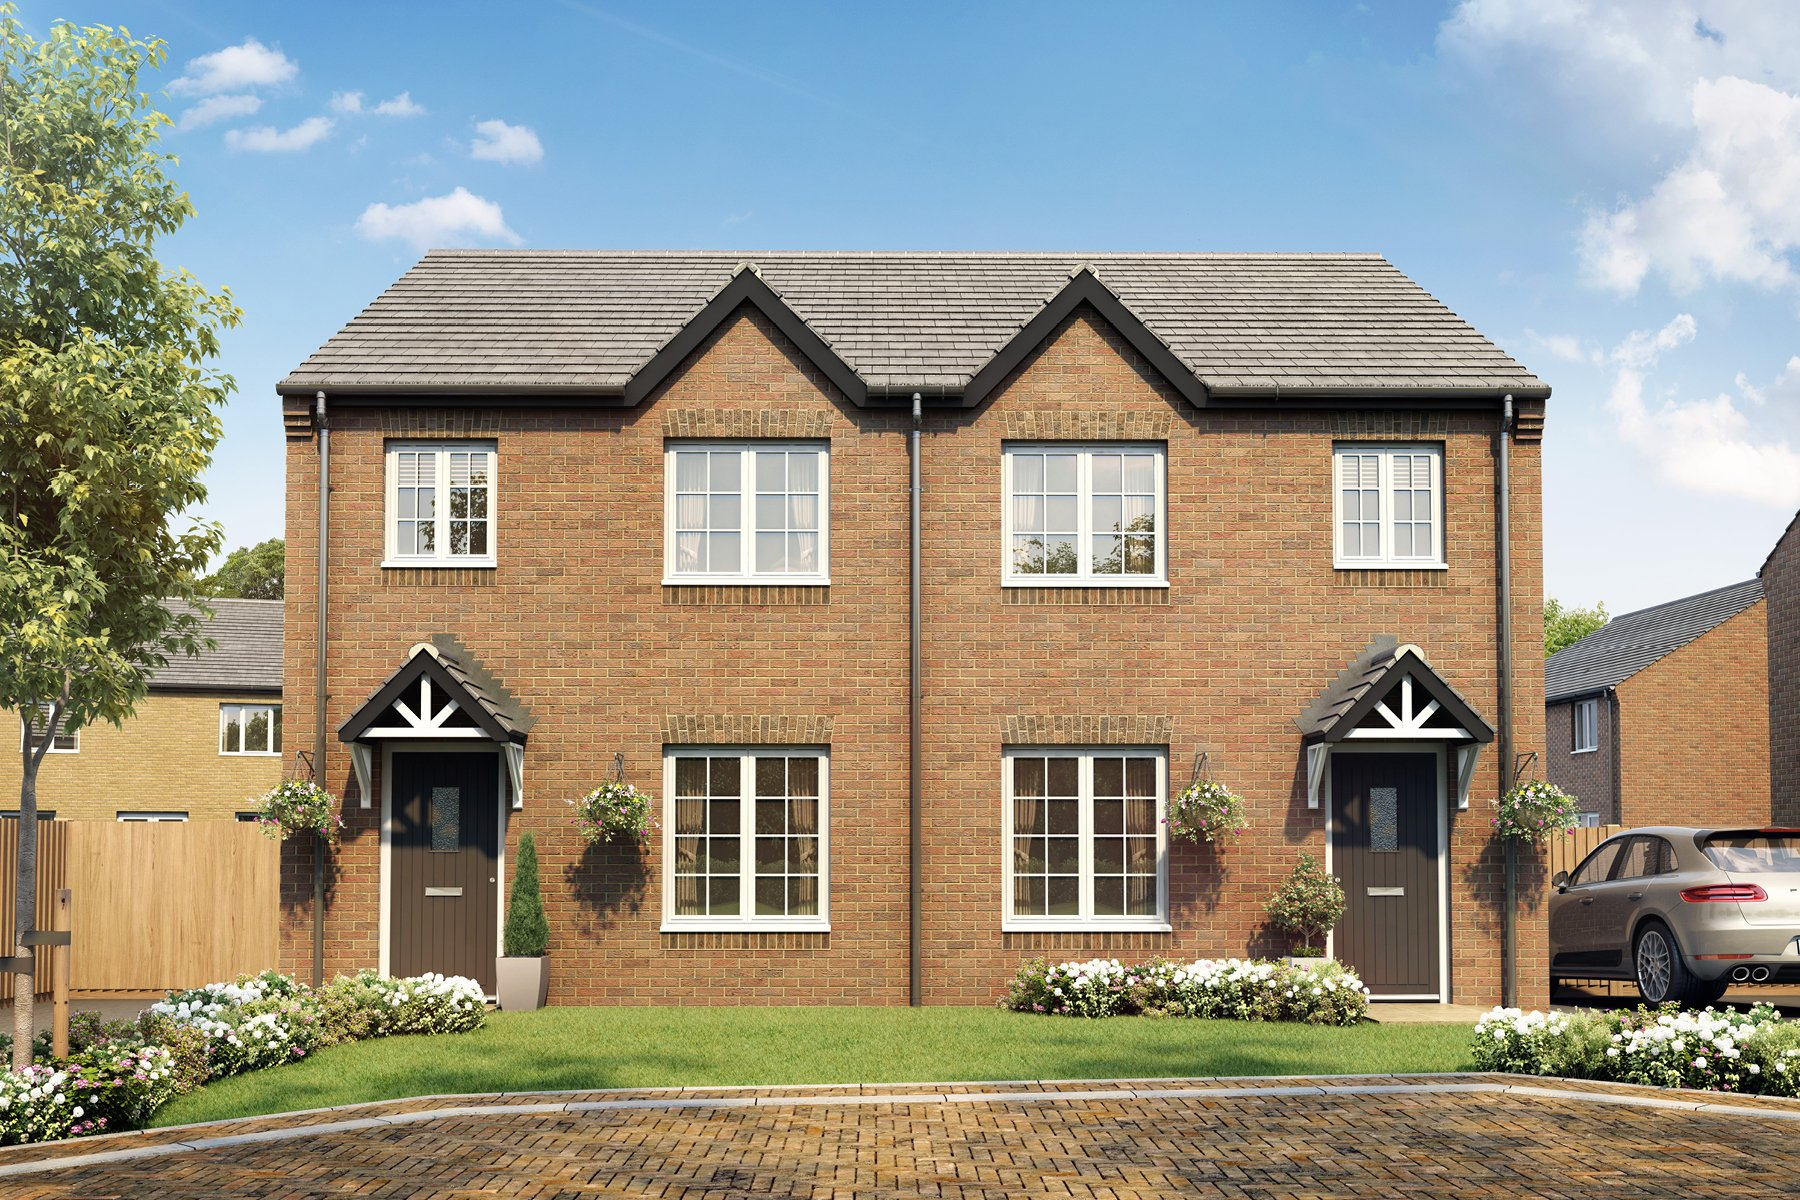 New TWY - Foxley Meadows - CGI - Gosford